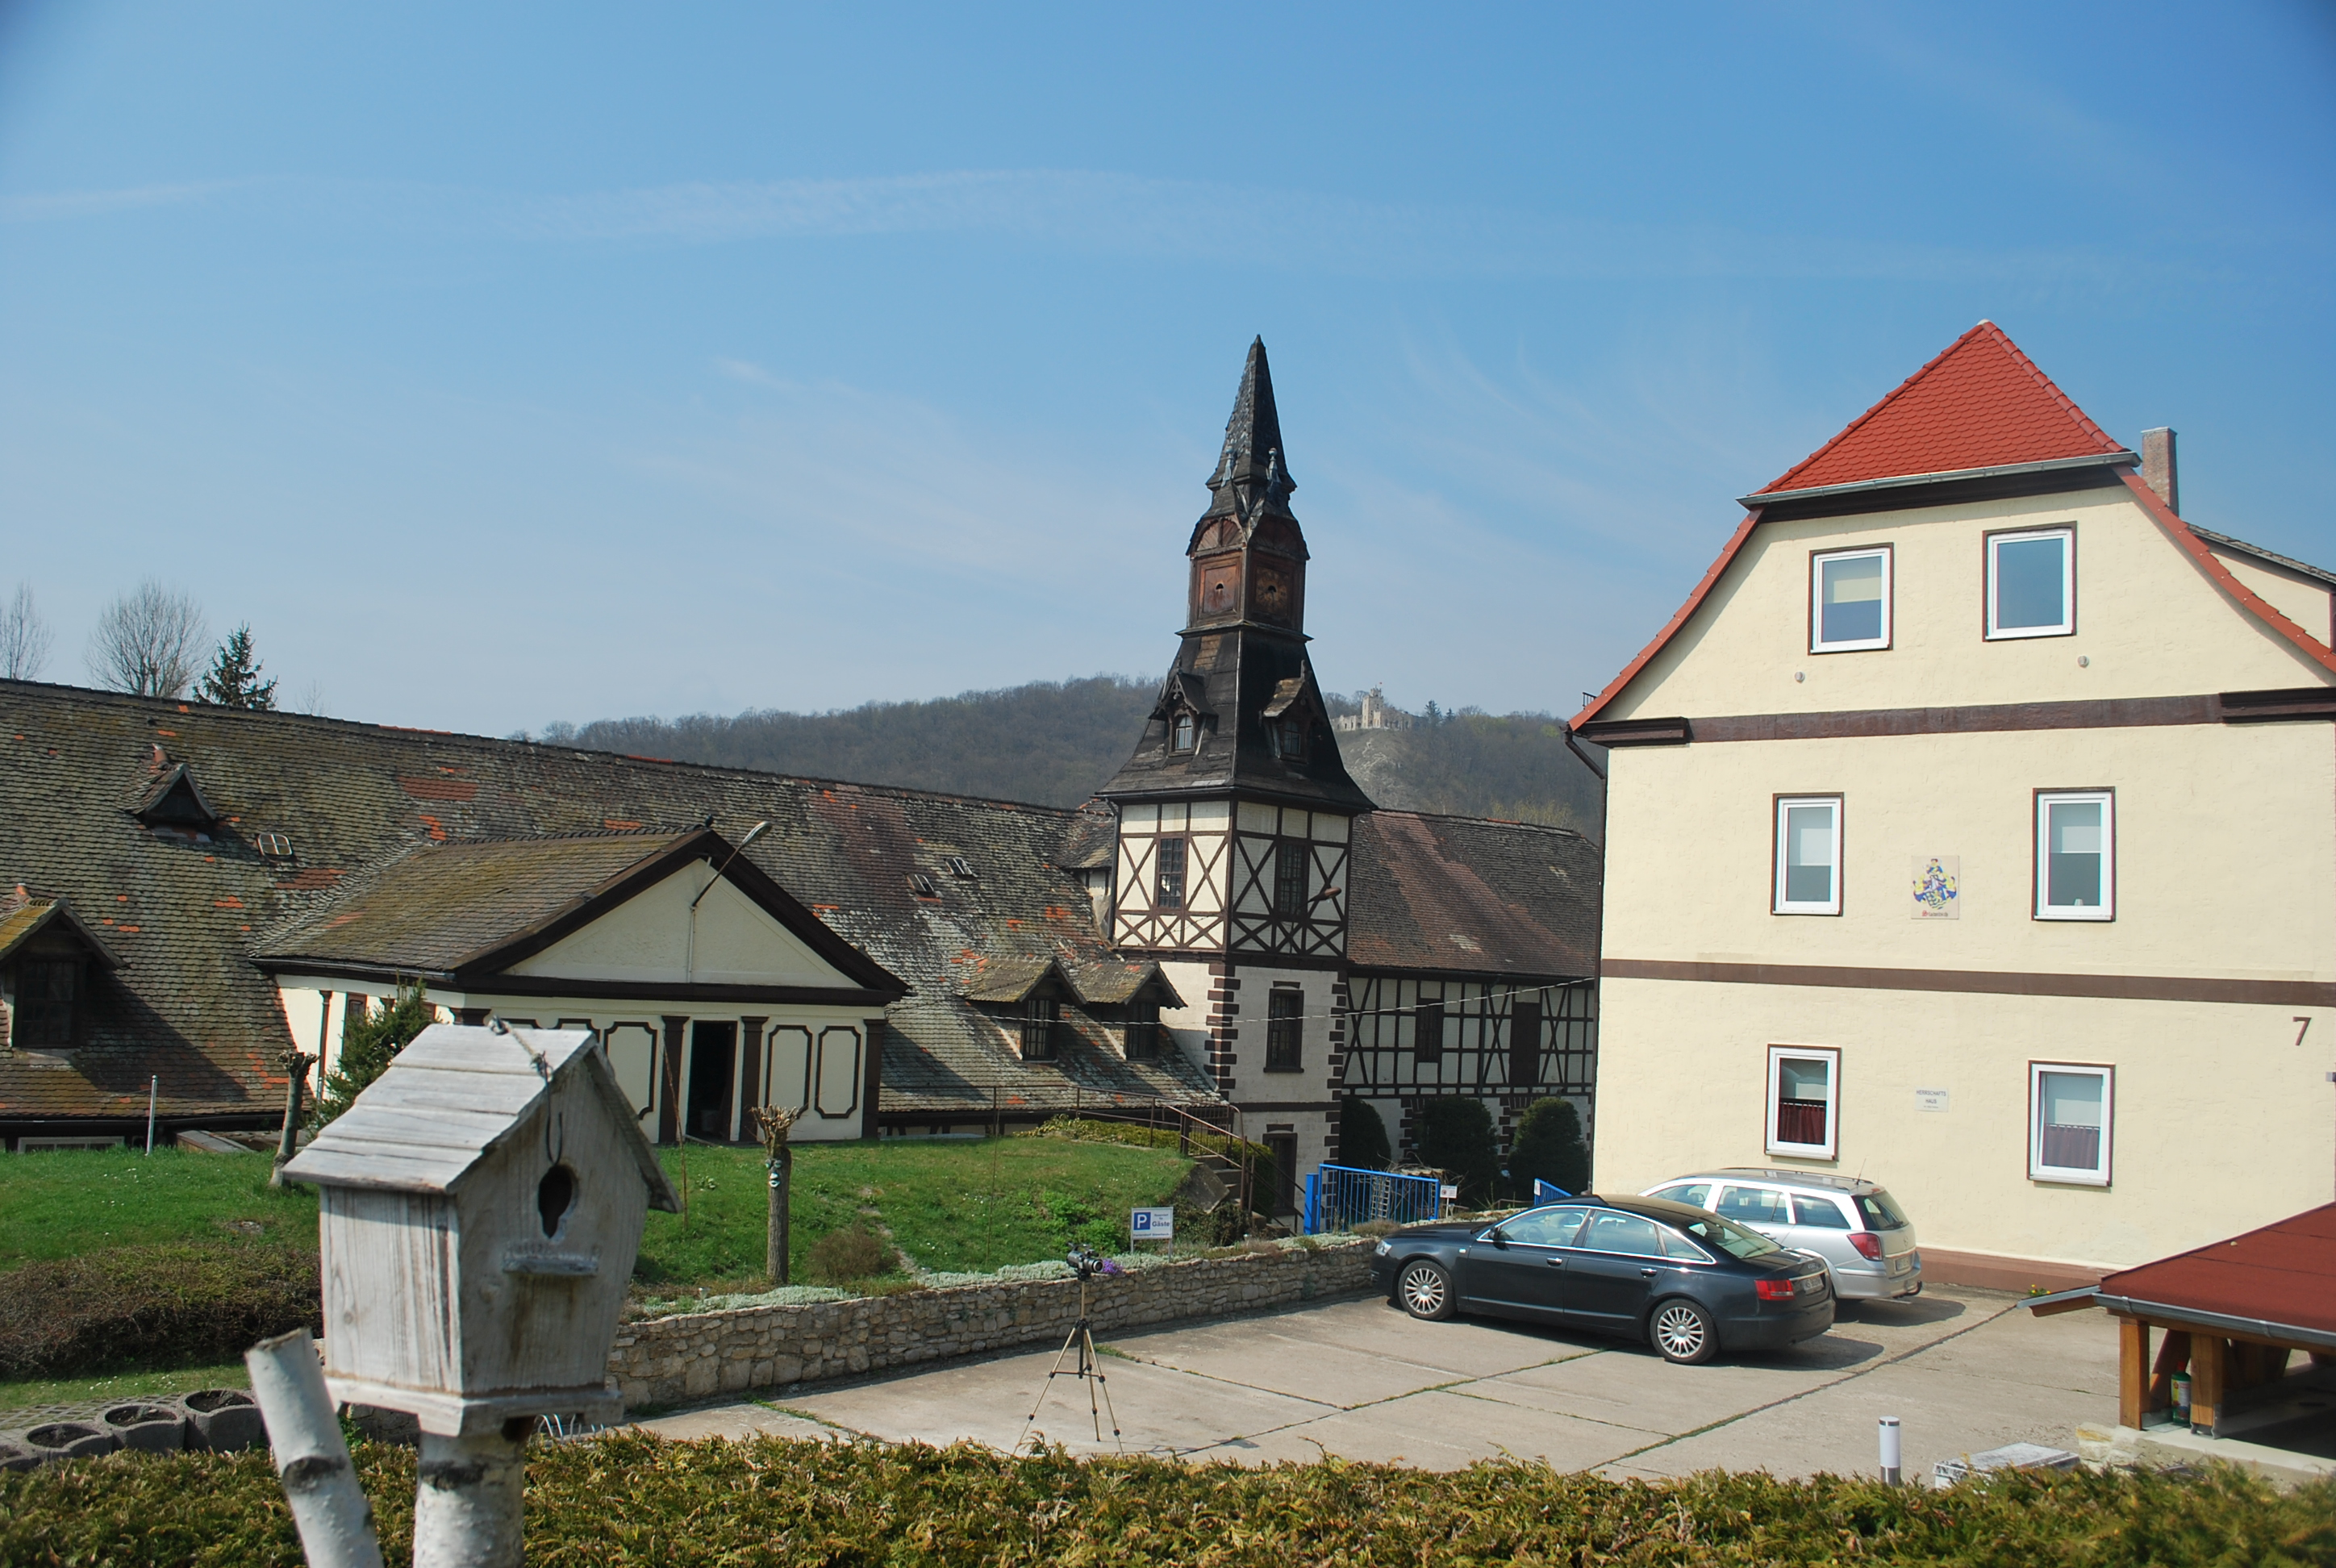 Holiday apartment Seepferdchen (2 Pers- 20m2) (421799), Bad Sulza, Weimar Country, Thuringia, Germany, picture 20